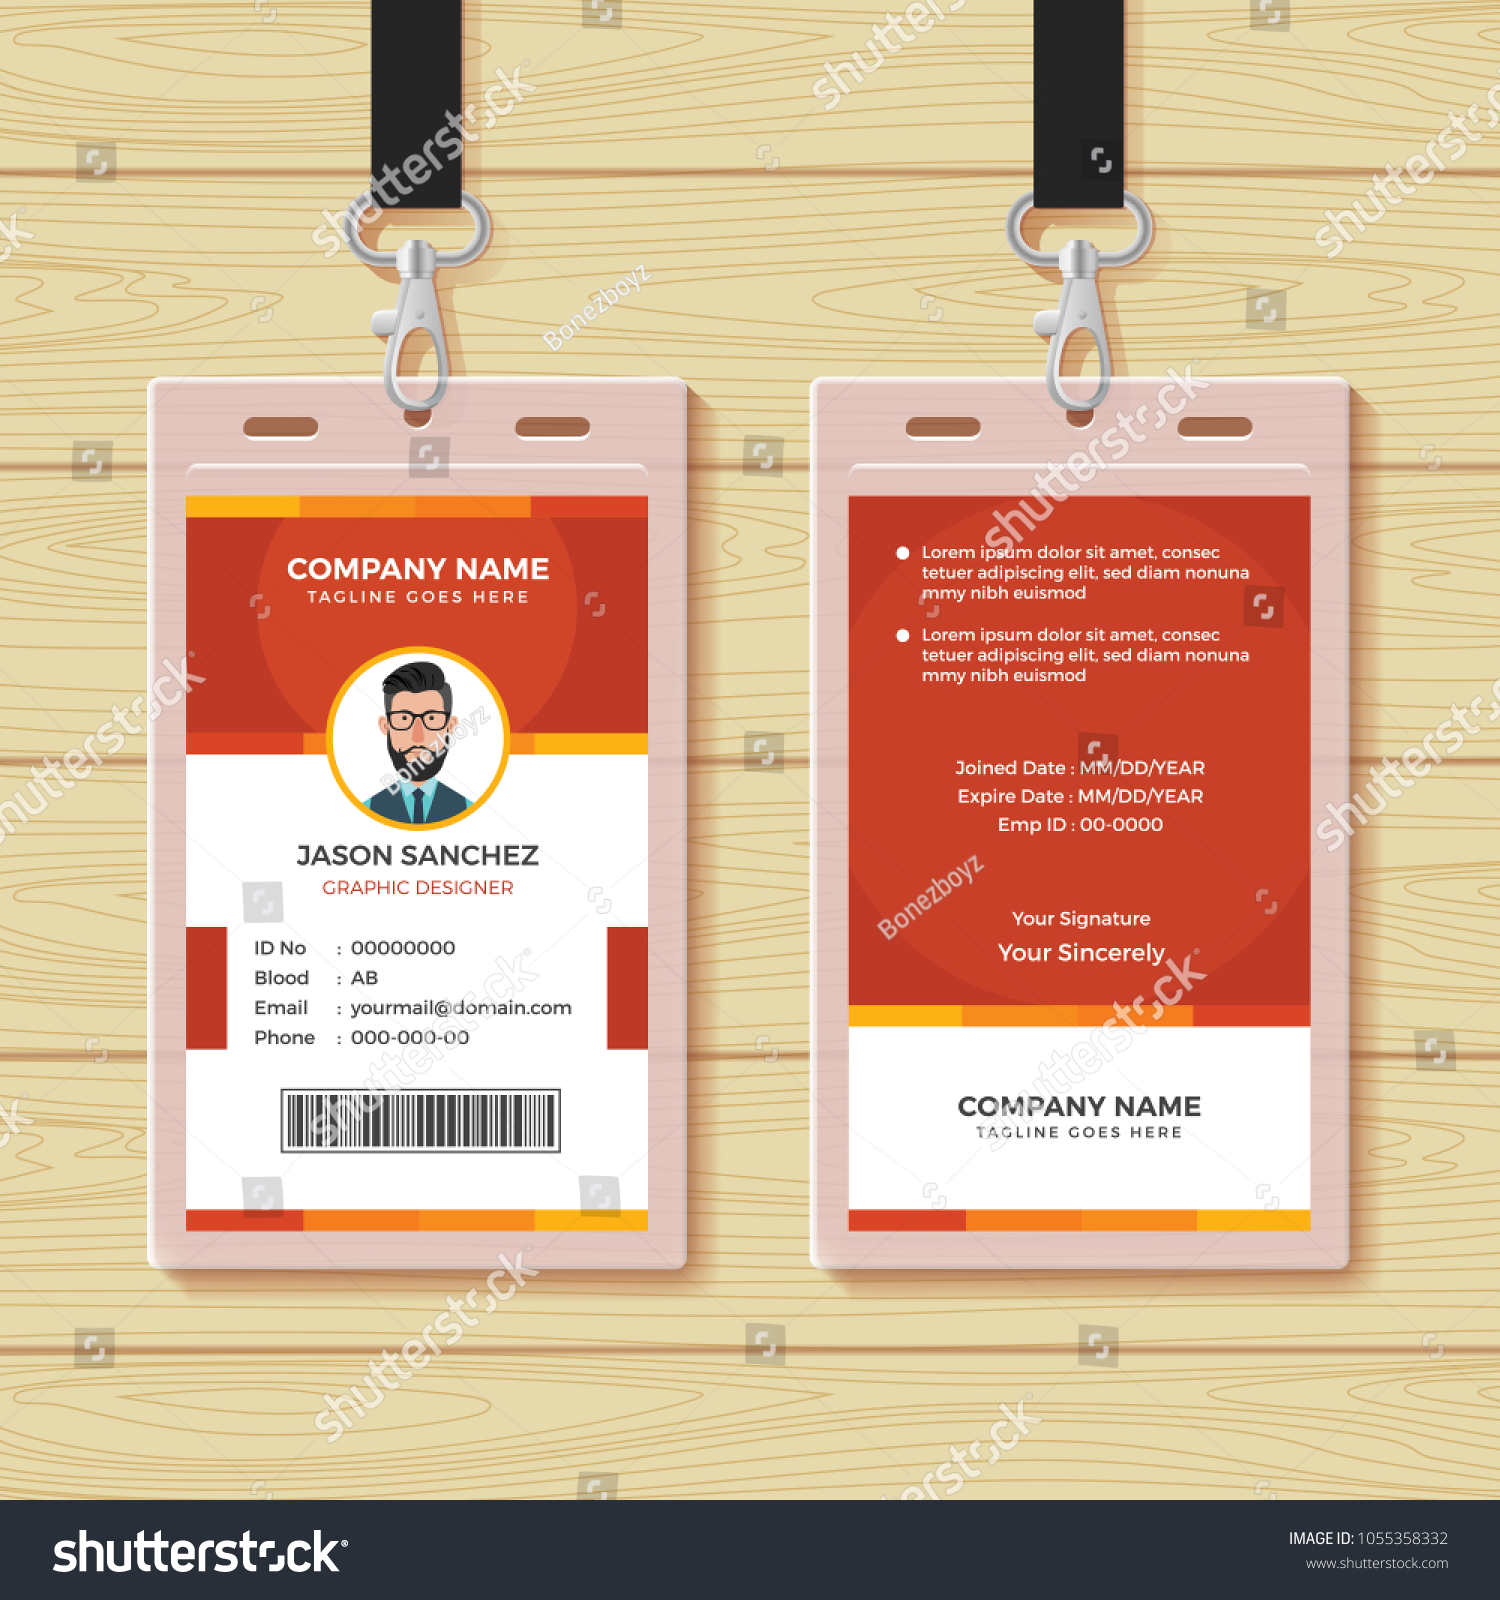 red employee id card design template のベクター画像素材